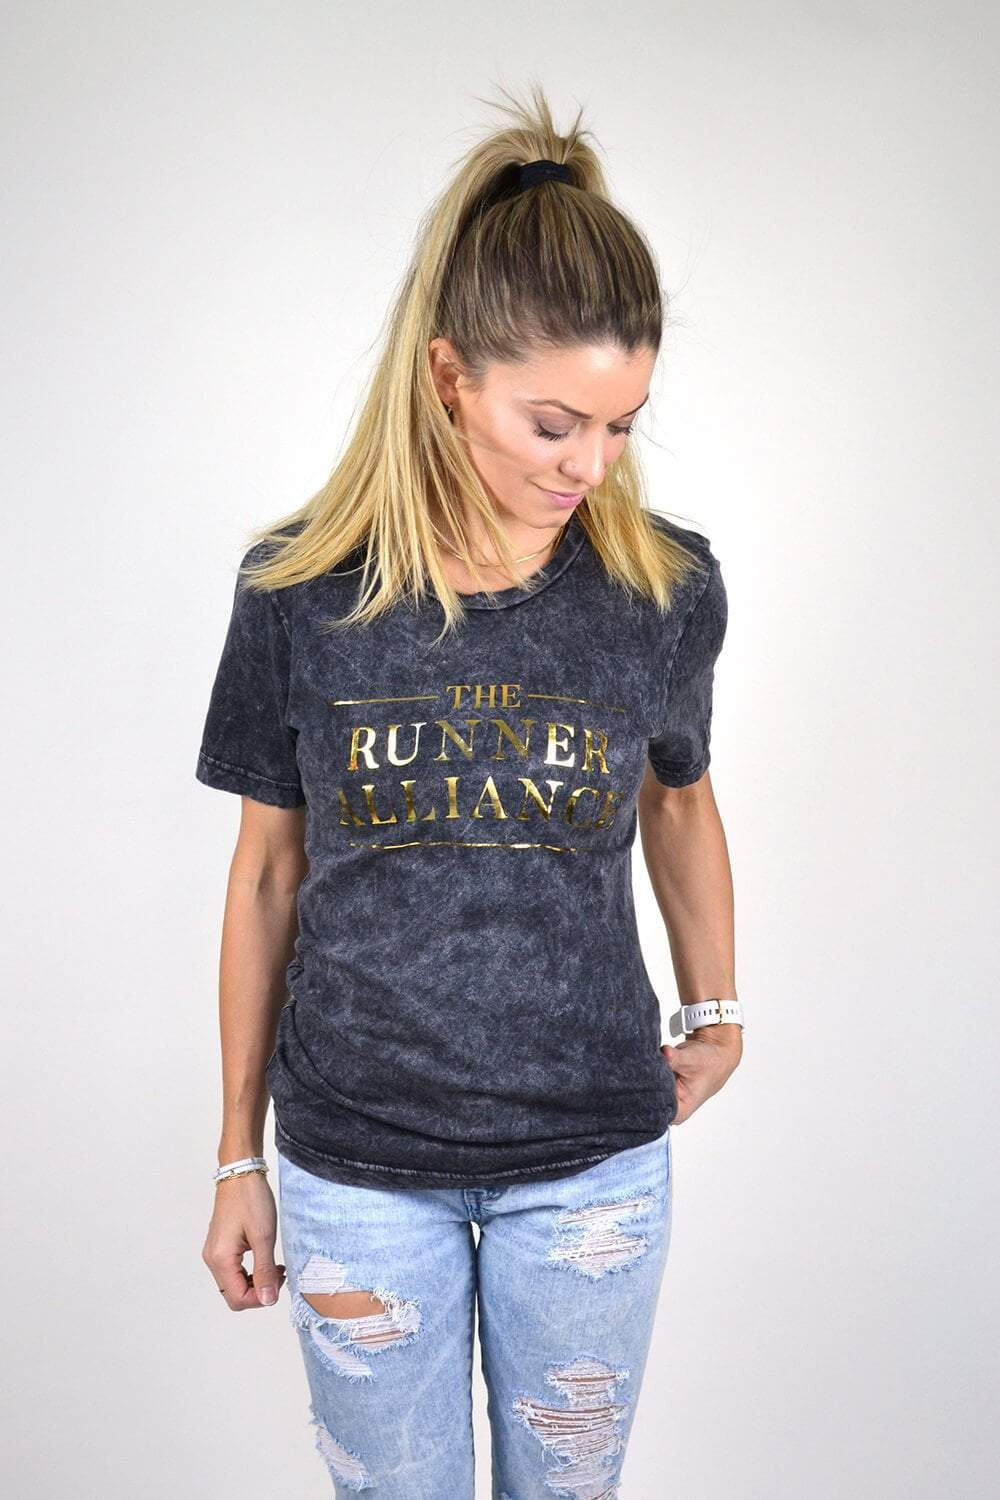 The Runner Alliance T-Shirt - Sarah Marie Design Studio